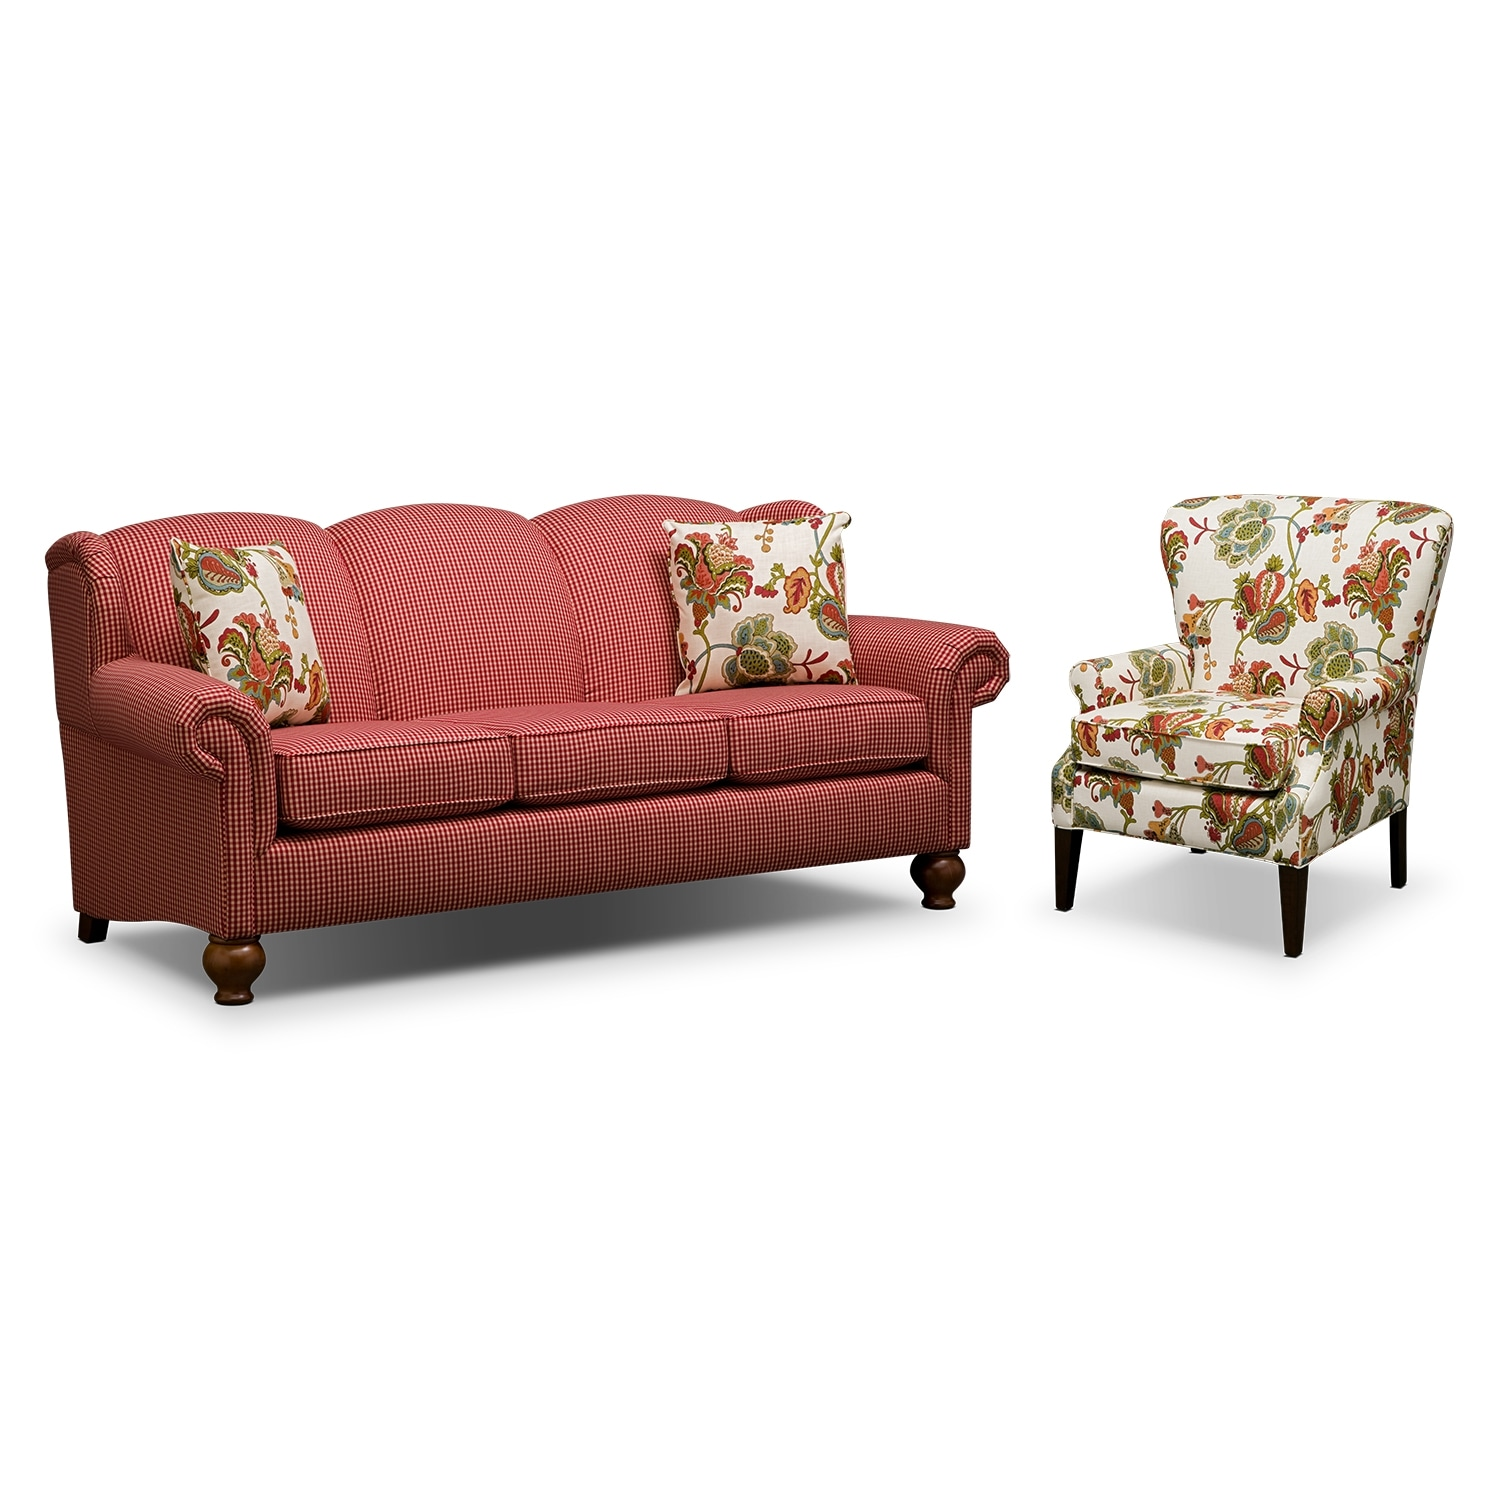 Living Room Furniture - Charlotte 2 Pc. Living Room w/ Accent Chair